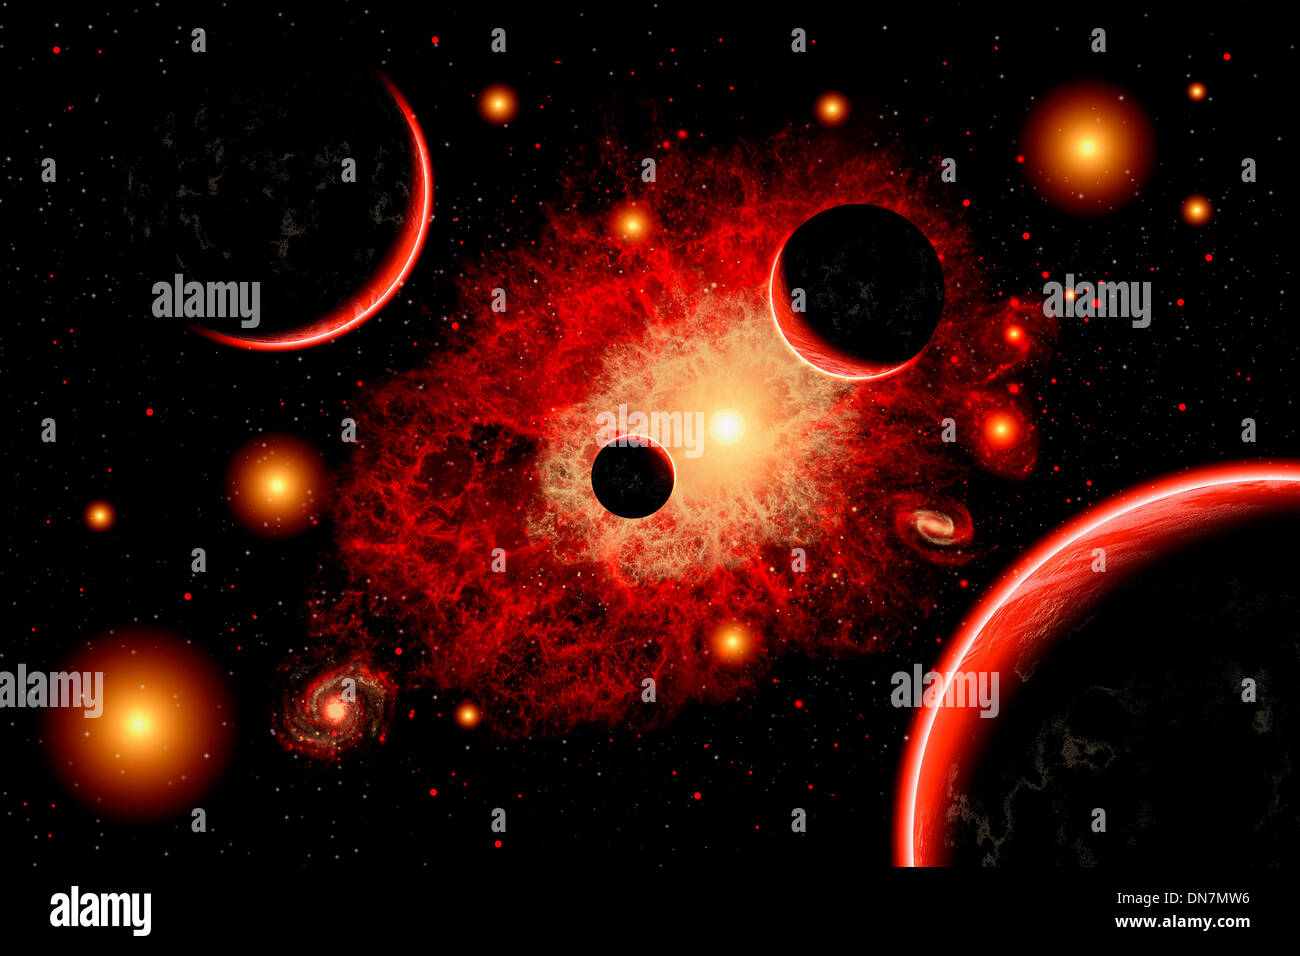 Red Giants Star System - Stock Image